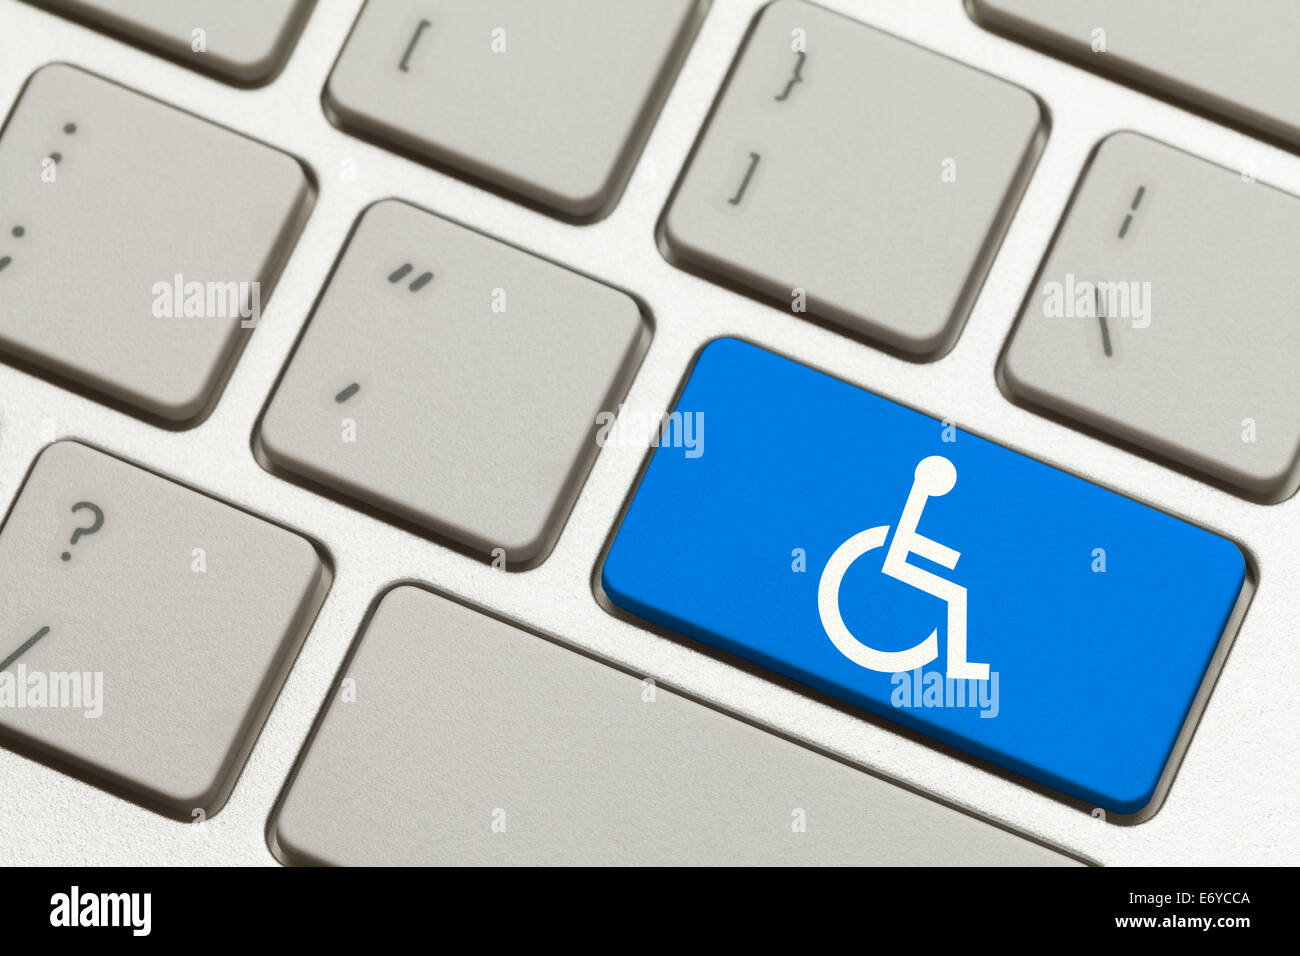 Close Up of Blue Handicap Key Button on a Keyboard. - Stock Image